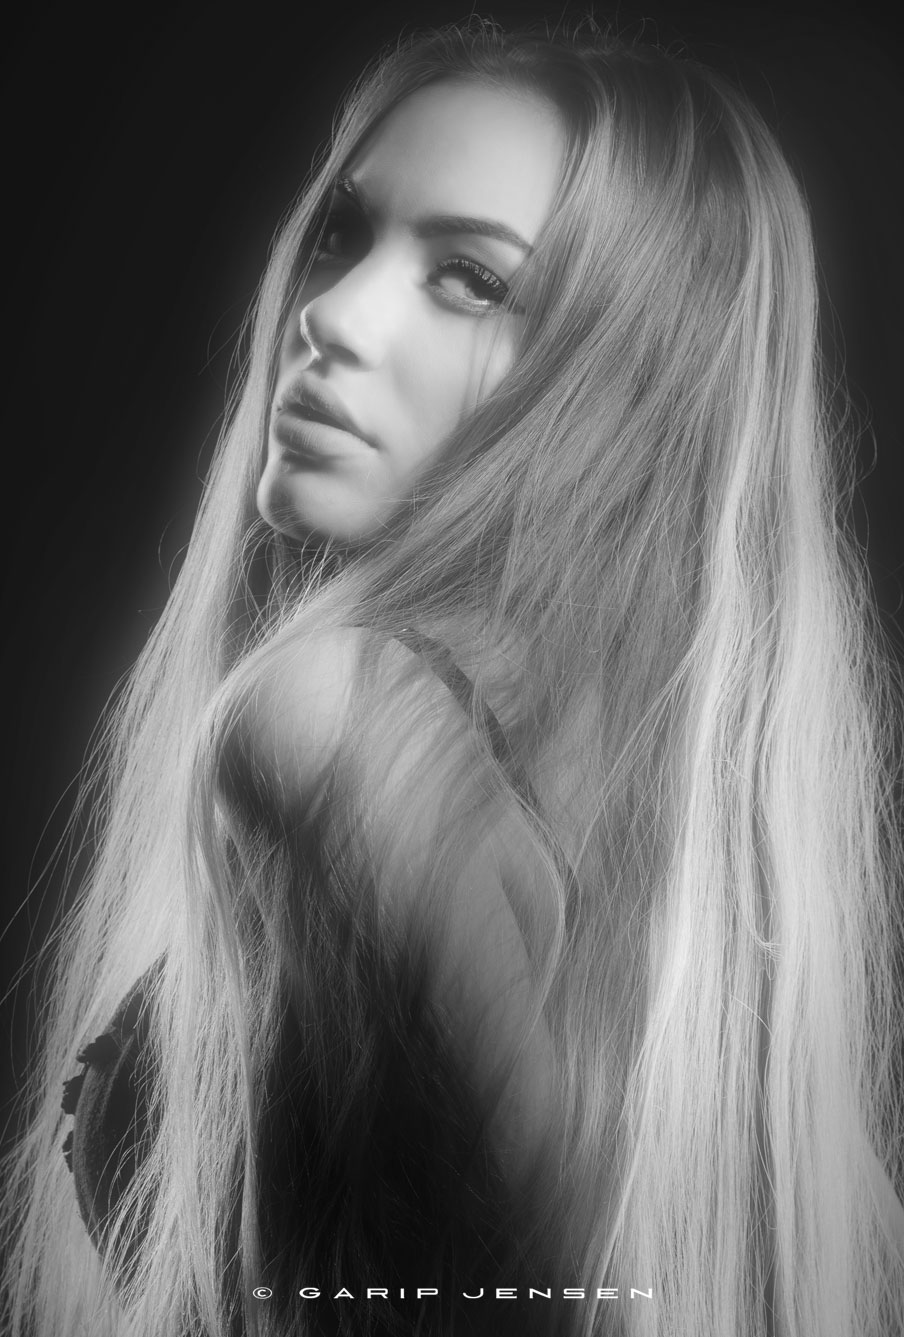 portrait of a young blond Swedish model, with long blond hair.